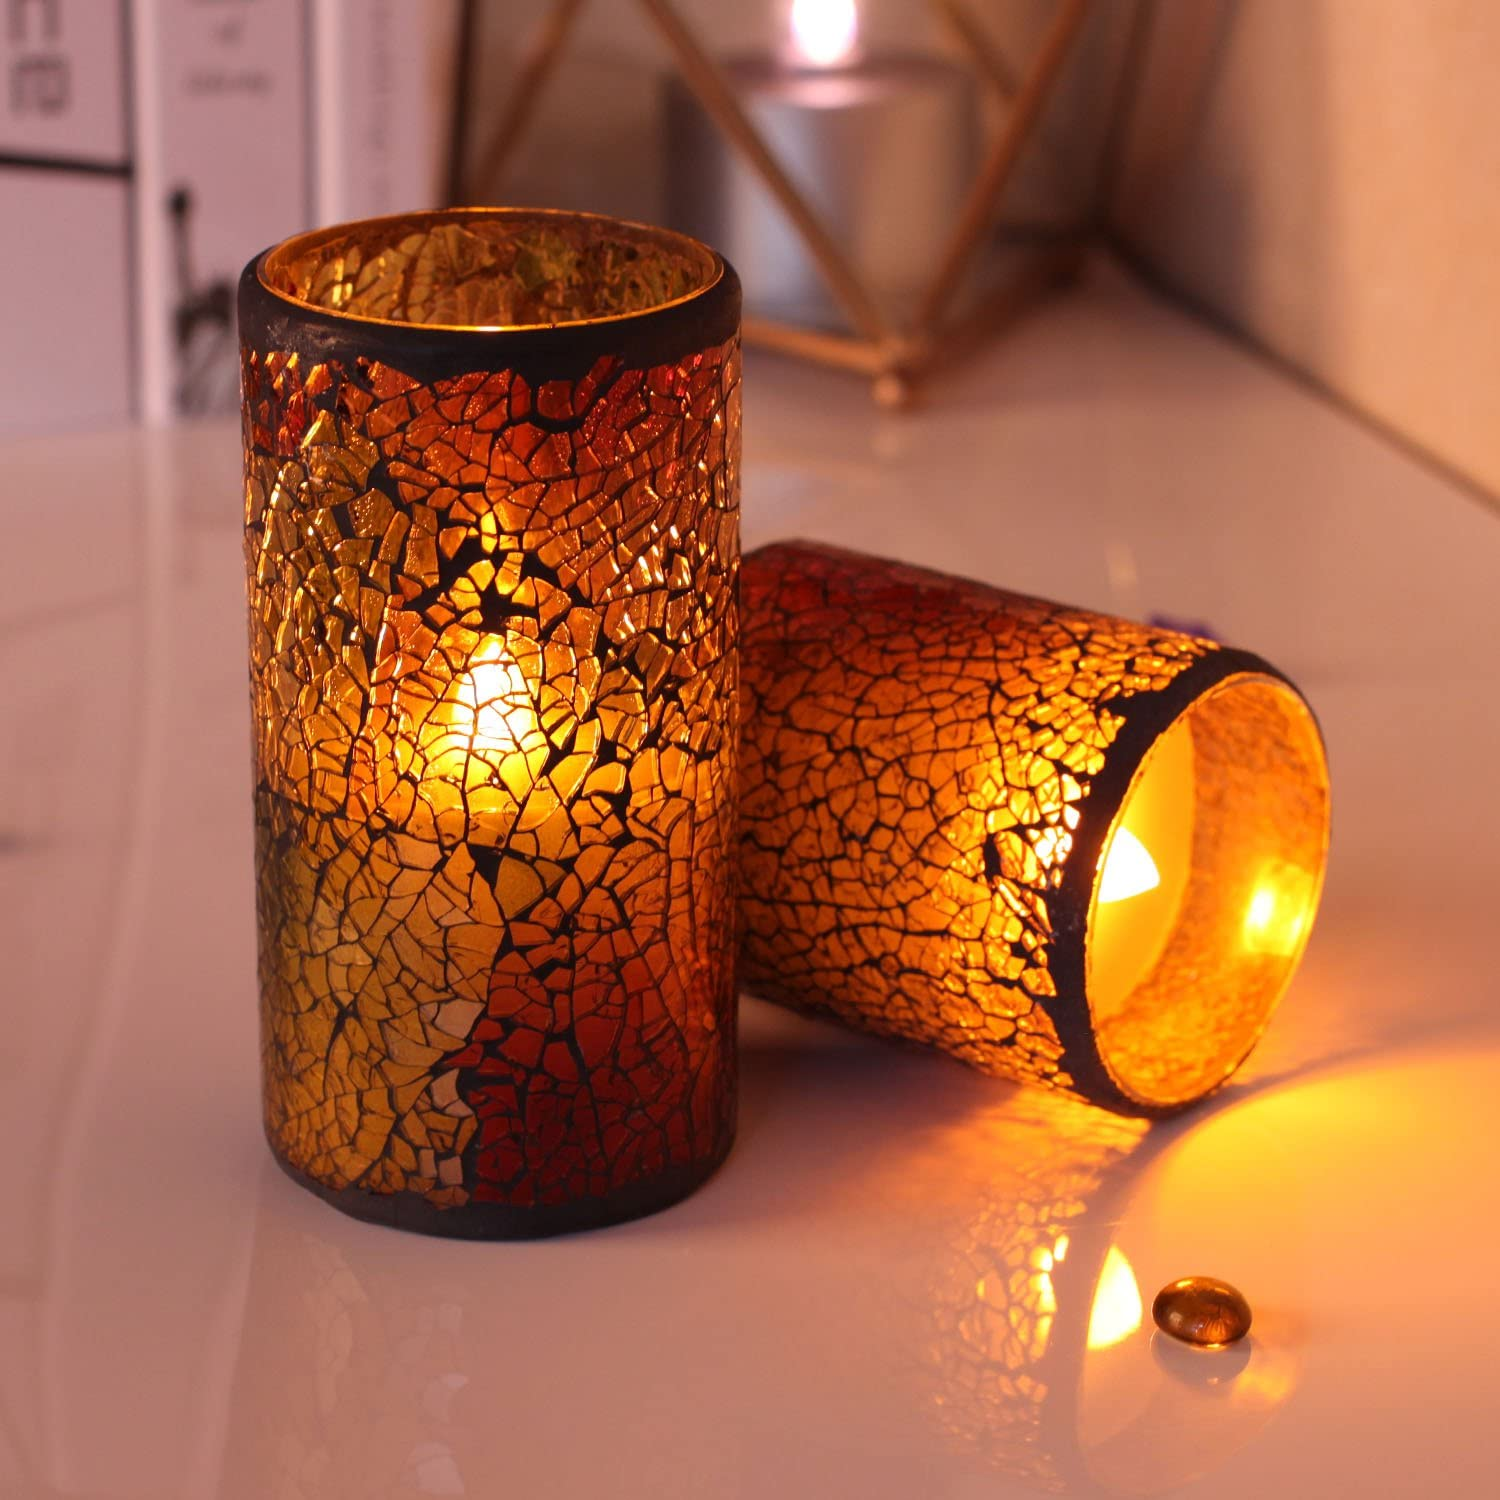 GiveU Red Mosaic Glass Led Timer Real Wax Pillar Flameless Candle Battery Operated for Home Table Lantern Decoration 3x6 inches